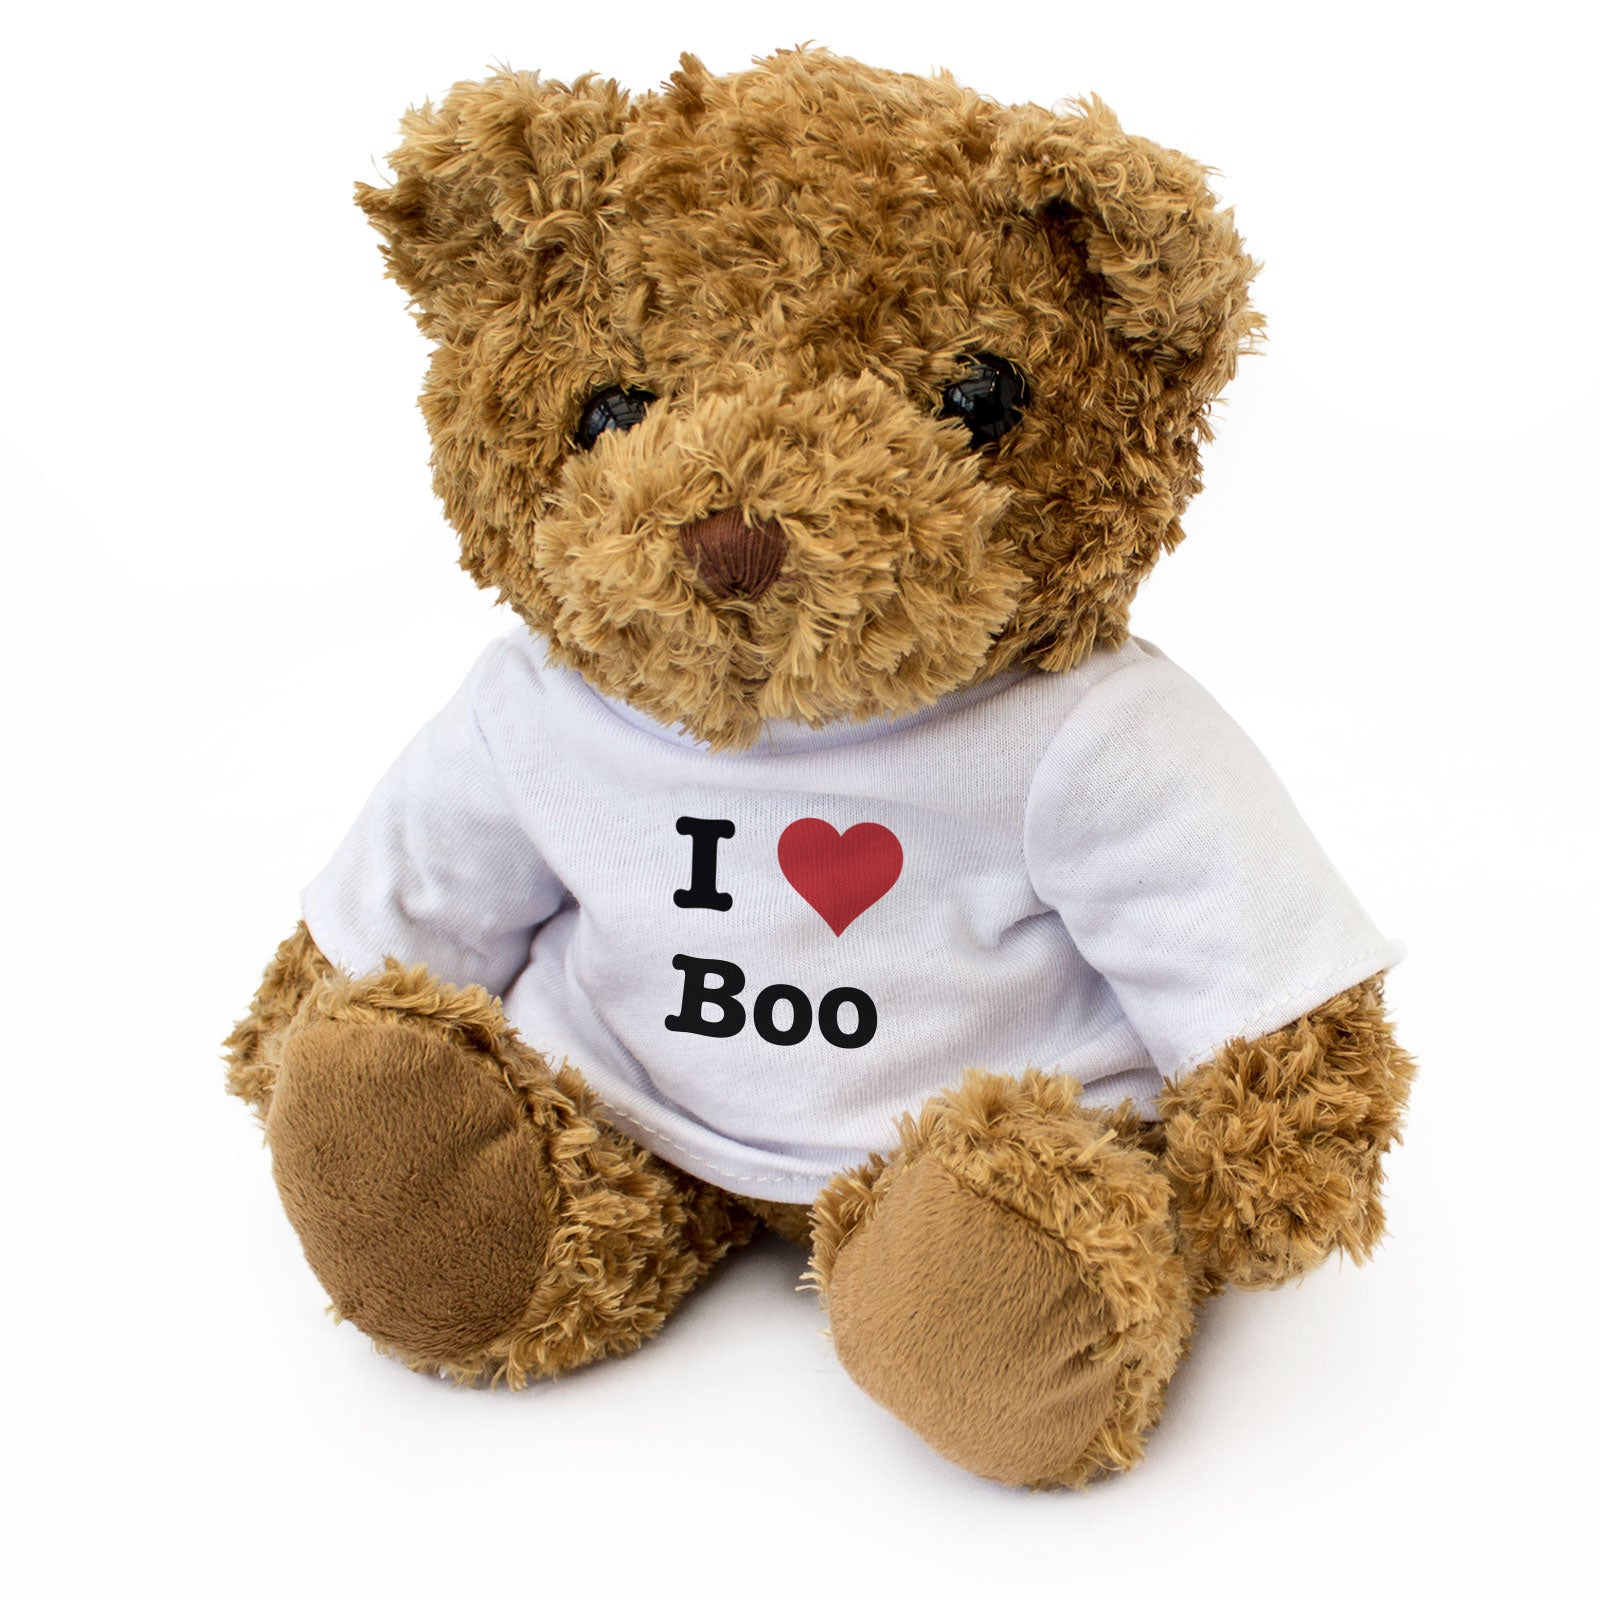 I Love Boo - Teddy Bear